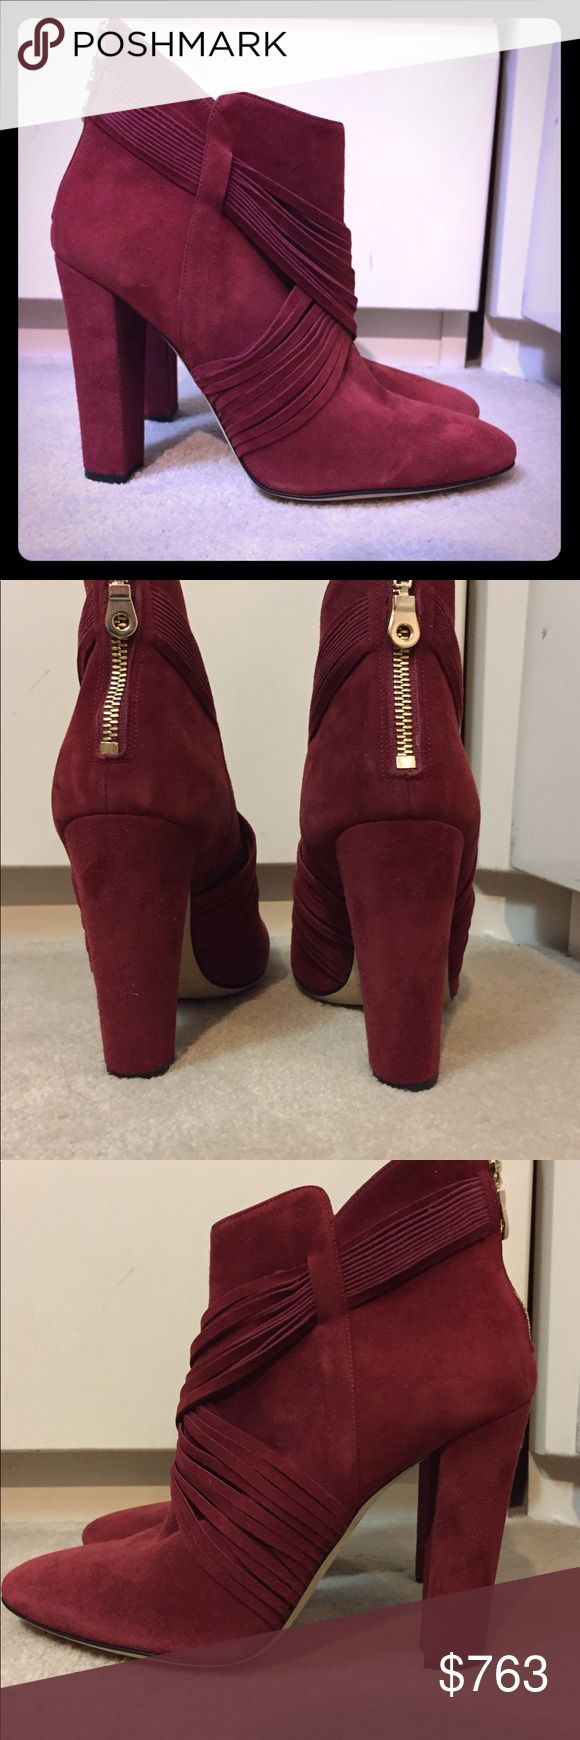 Oscar de la Renta wine red ankle booties. NWT Oscar de la Renta wine red ankle booties. NWT. Size 10 but will fit 9.5 so that's what I'm listing as. Was display so some scuffing on bottom as seen, otherwise brand new! Oscar de la Renta Shoes Ankle Boots & Booties